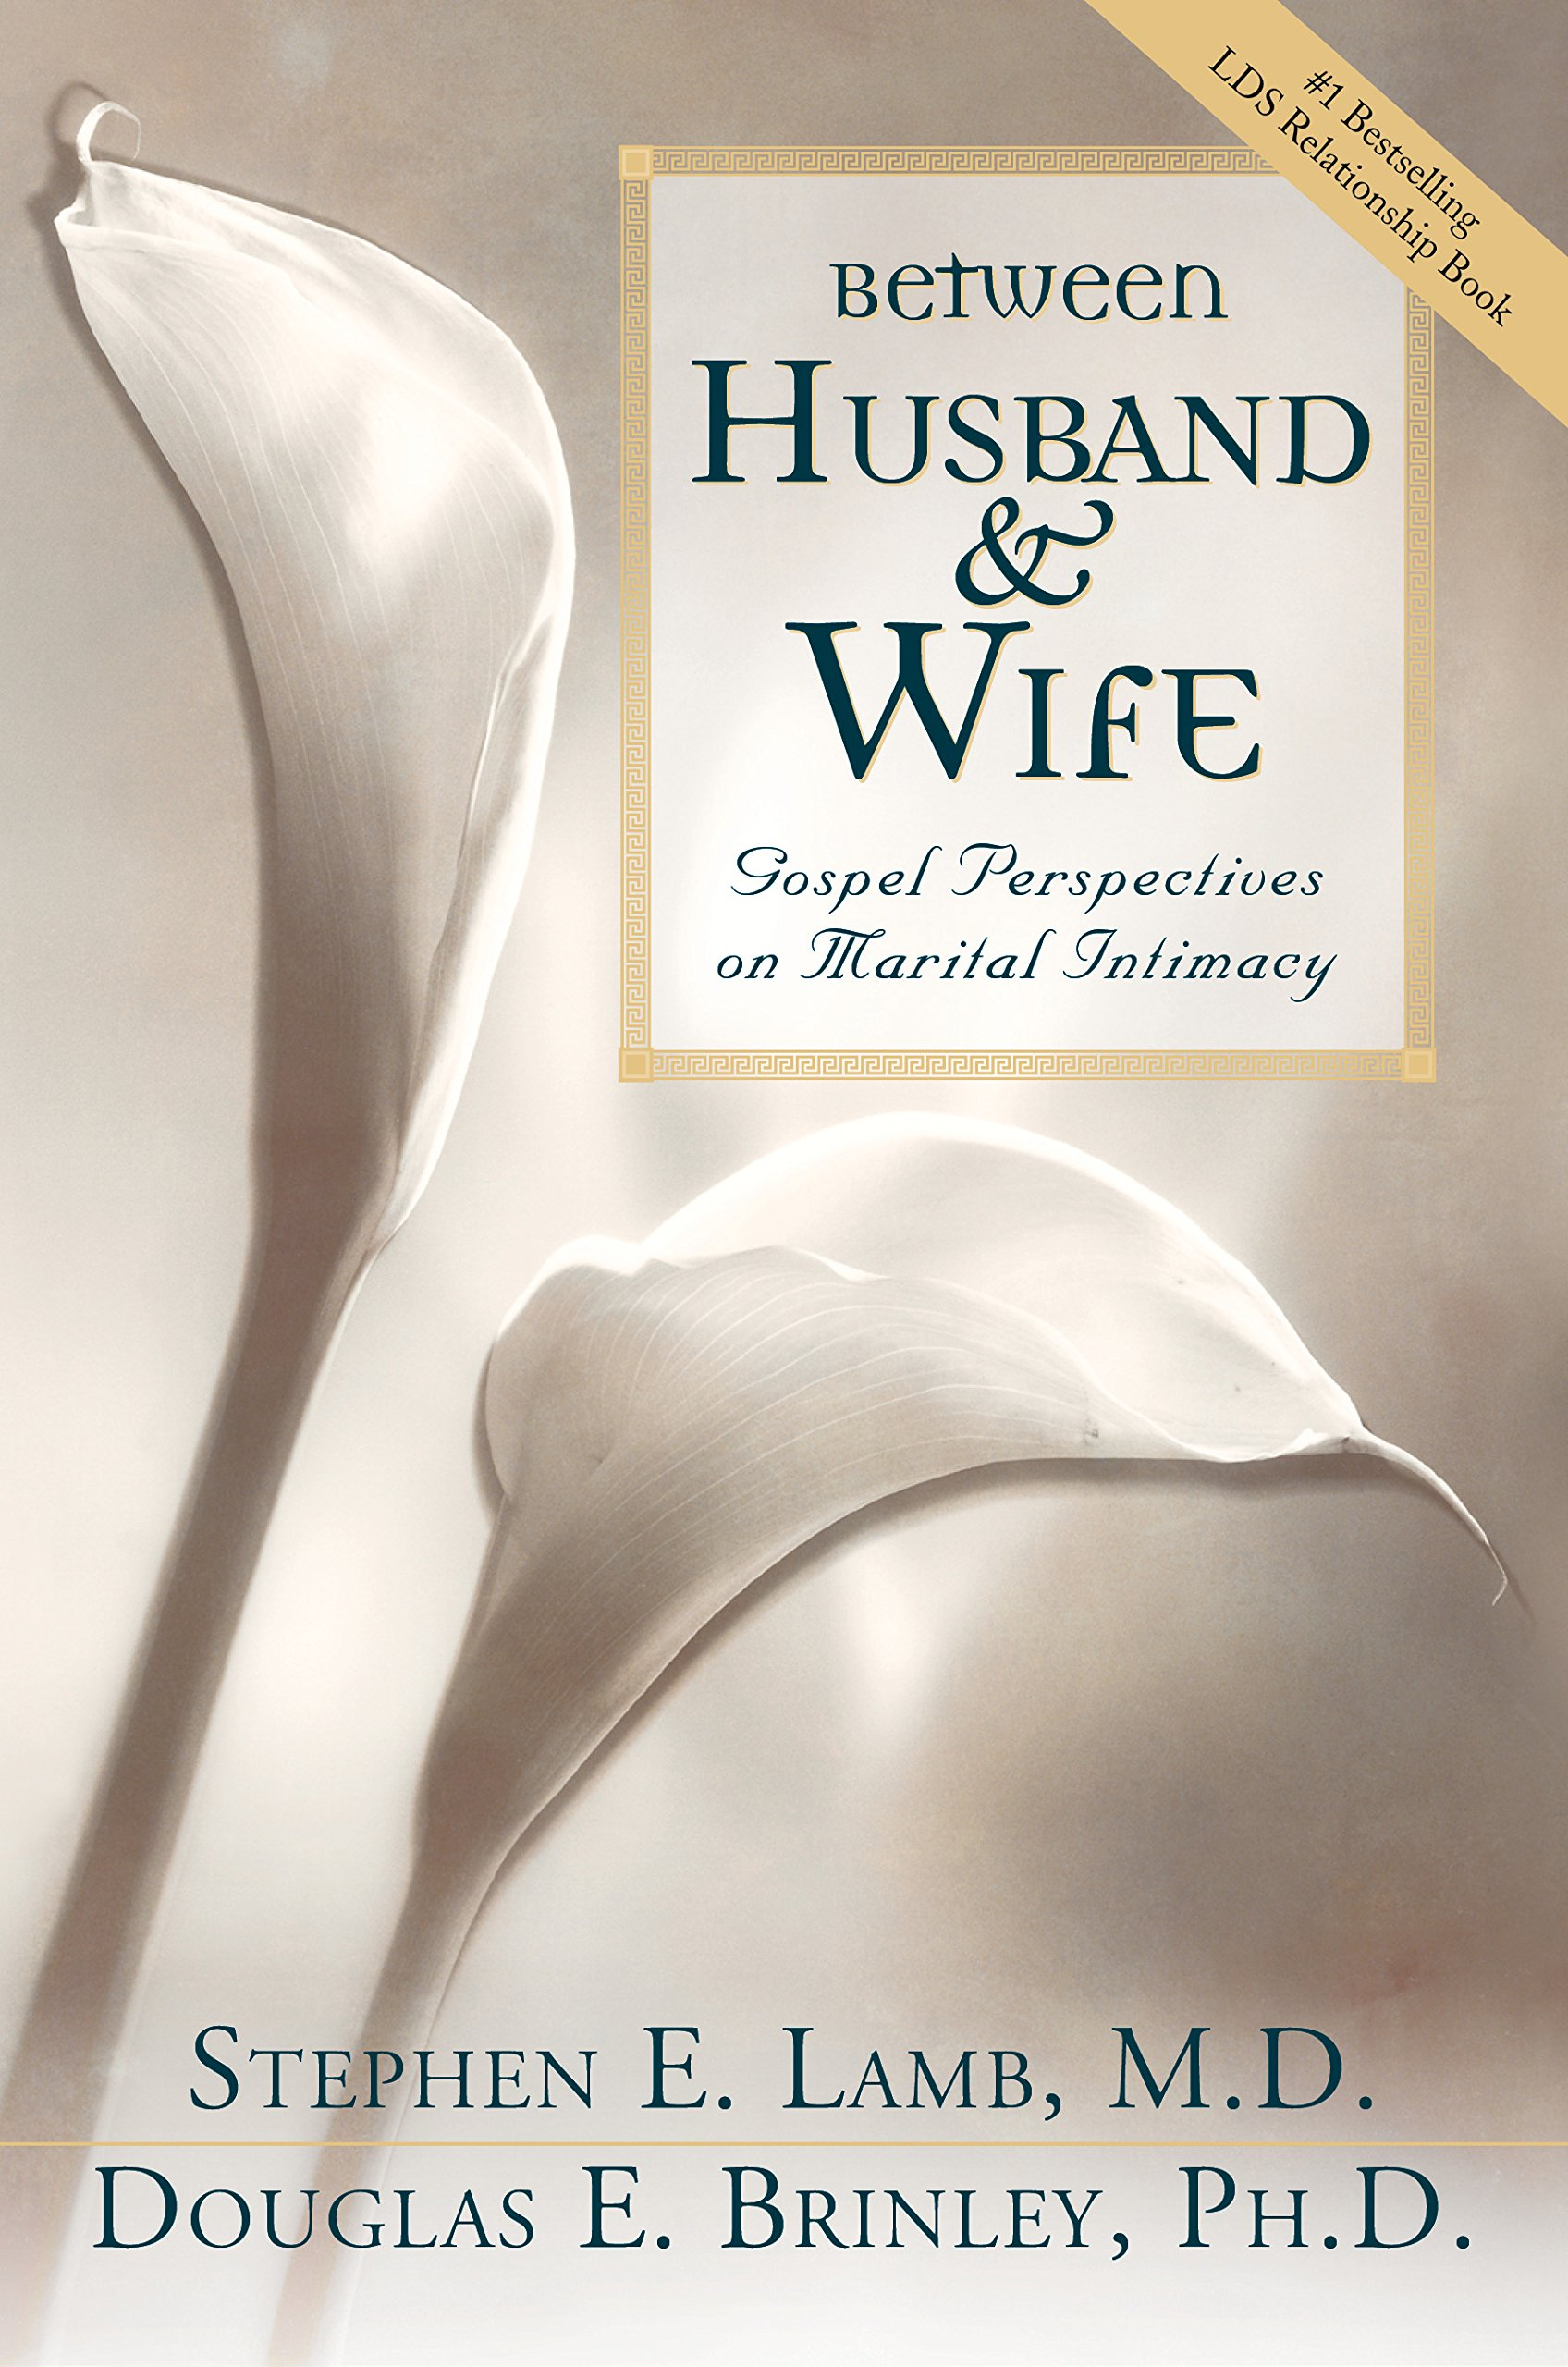 between husband and wife gospel perspectives on marital intimacy